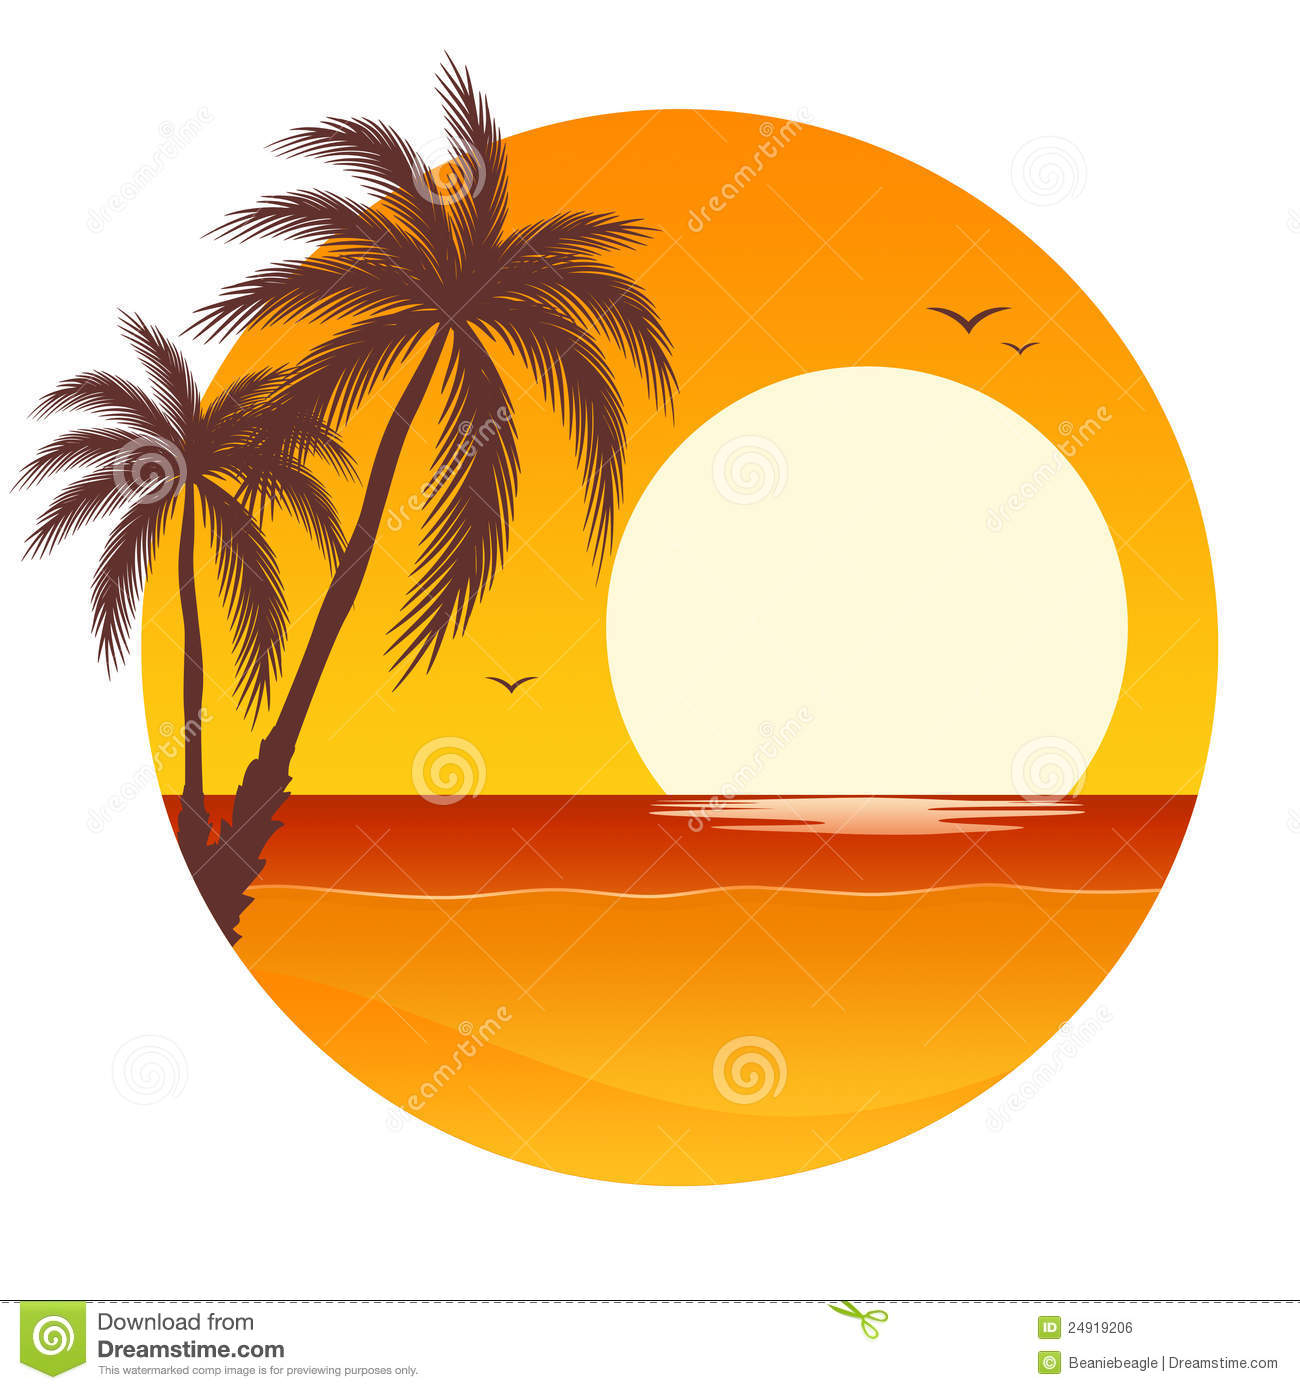 ocean sunset clip art palm clipart panda free clipart images rh clipartpanda com palm tree sunset clipart free beach sunset clipart free